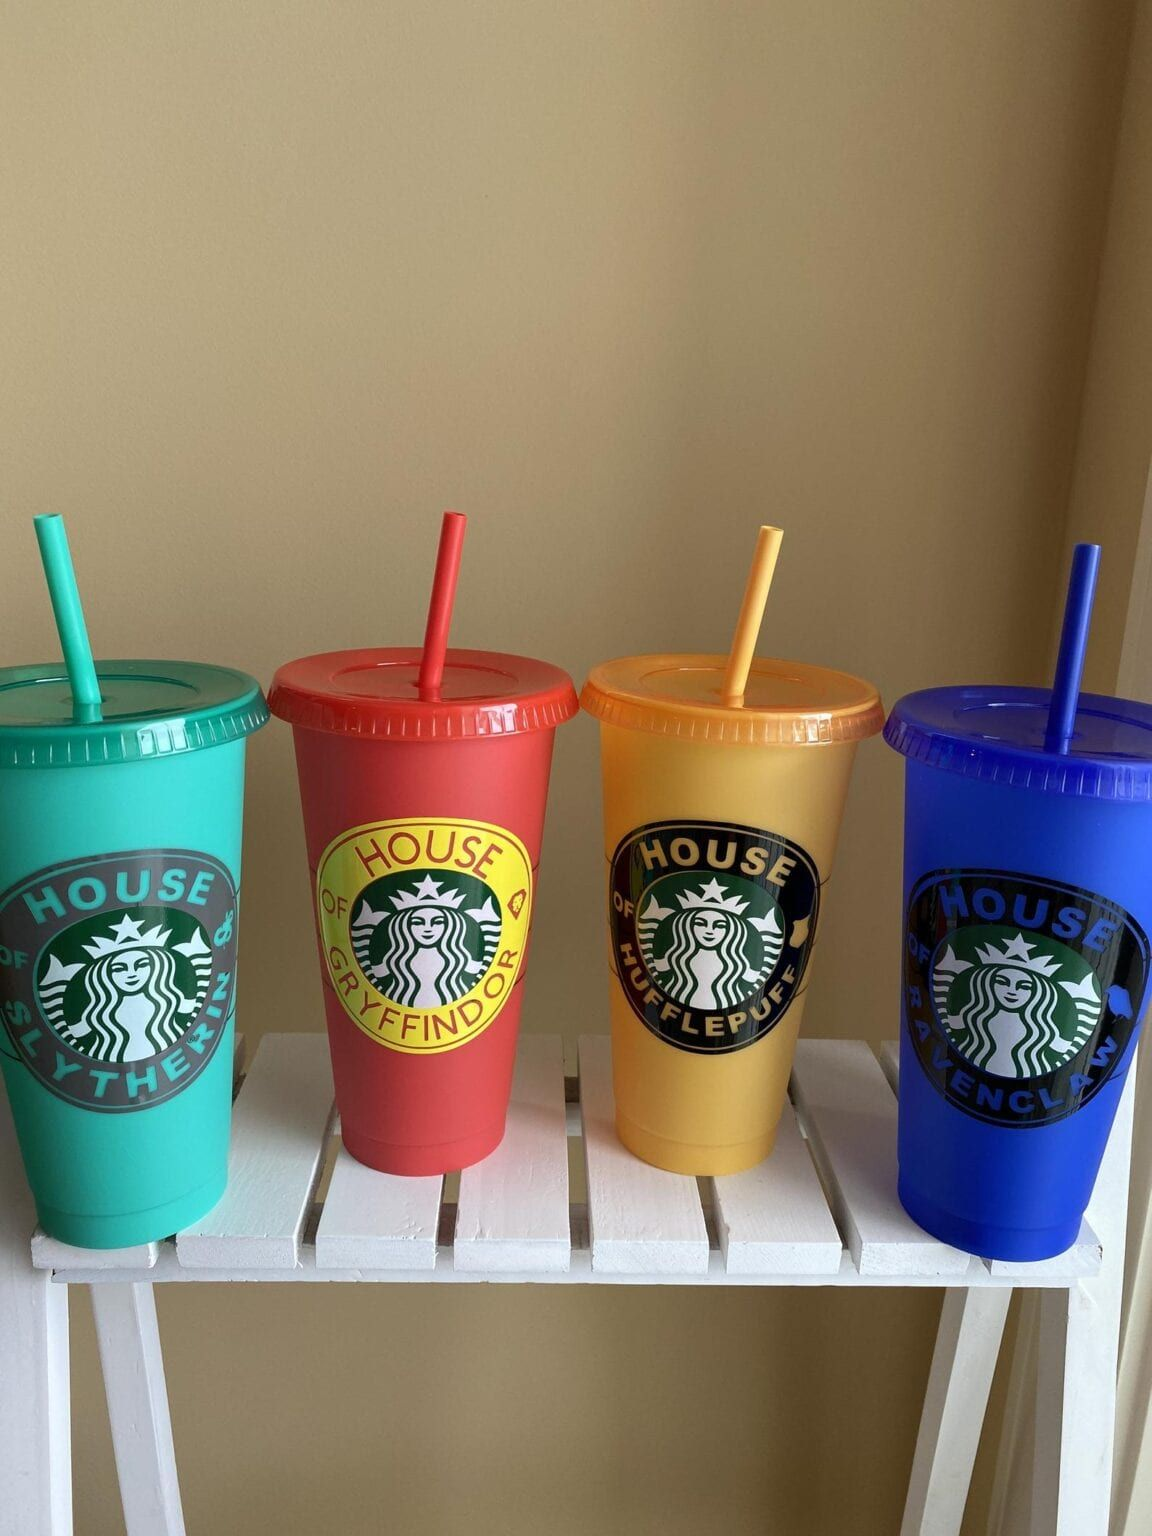 Harry Potter Color Changing Starbucks Cups Are Here, Accio Them To Me!